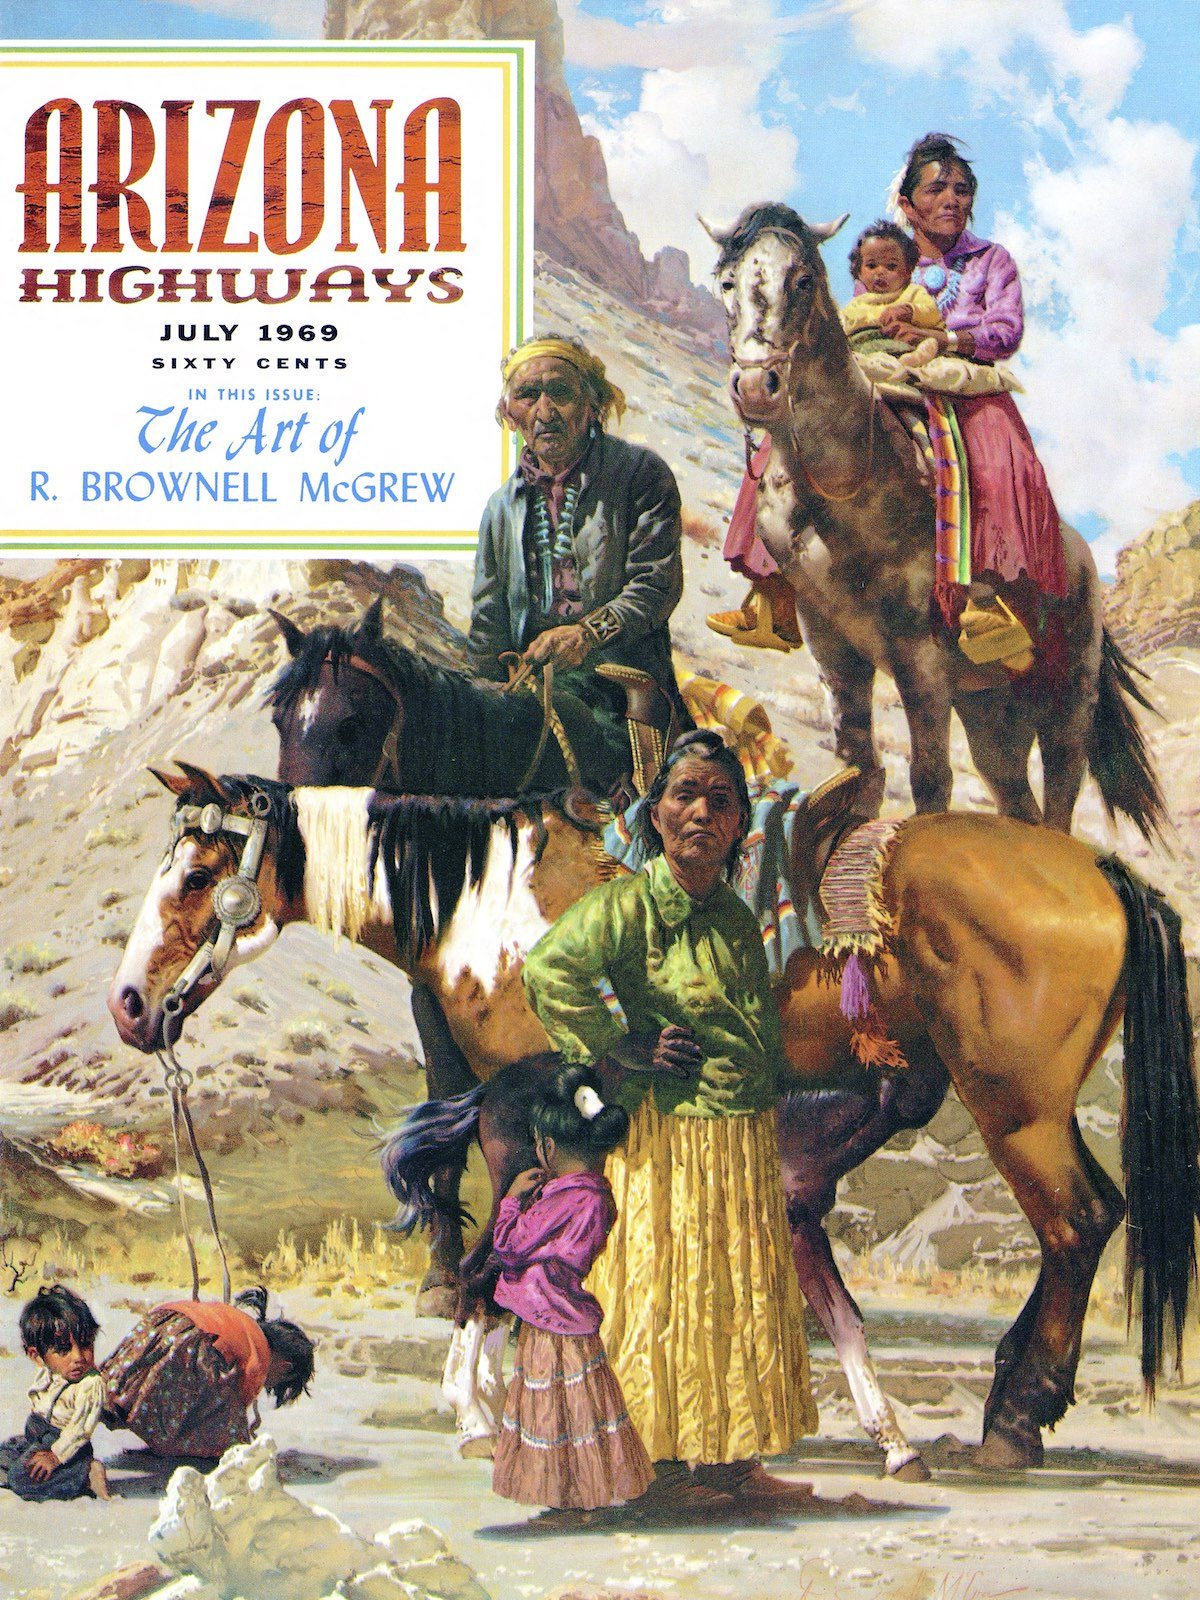 July 1969 cover of Arizona Highways